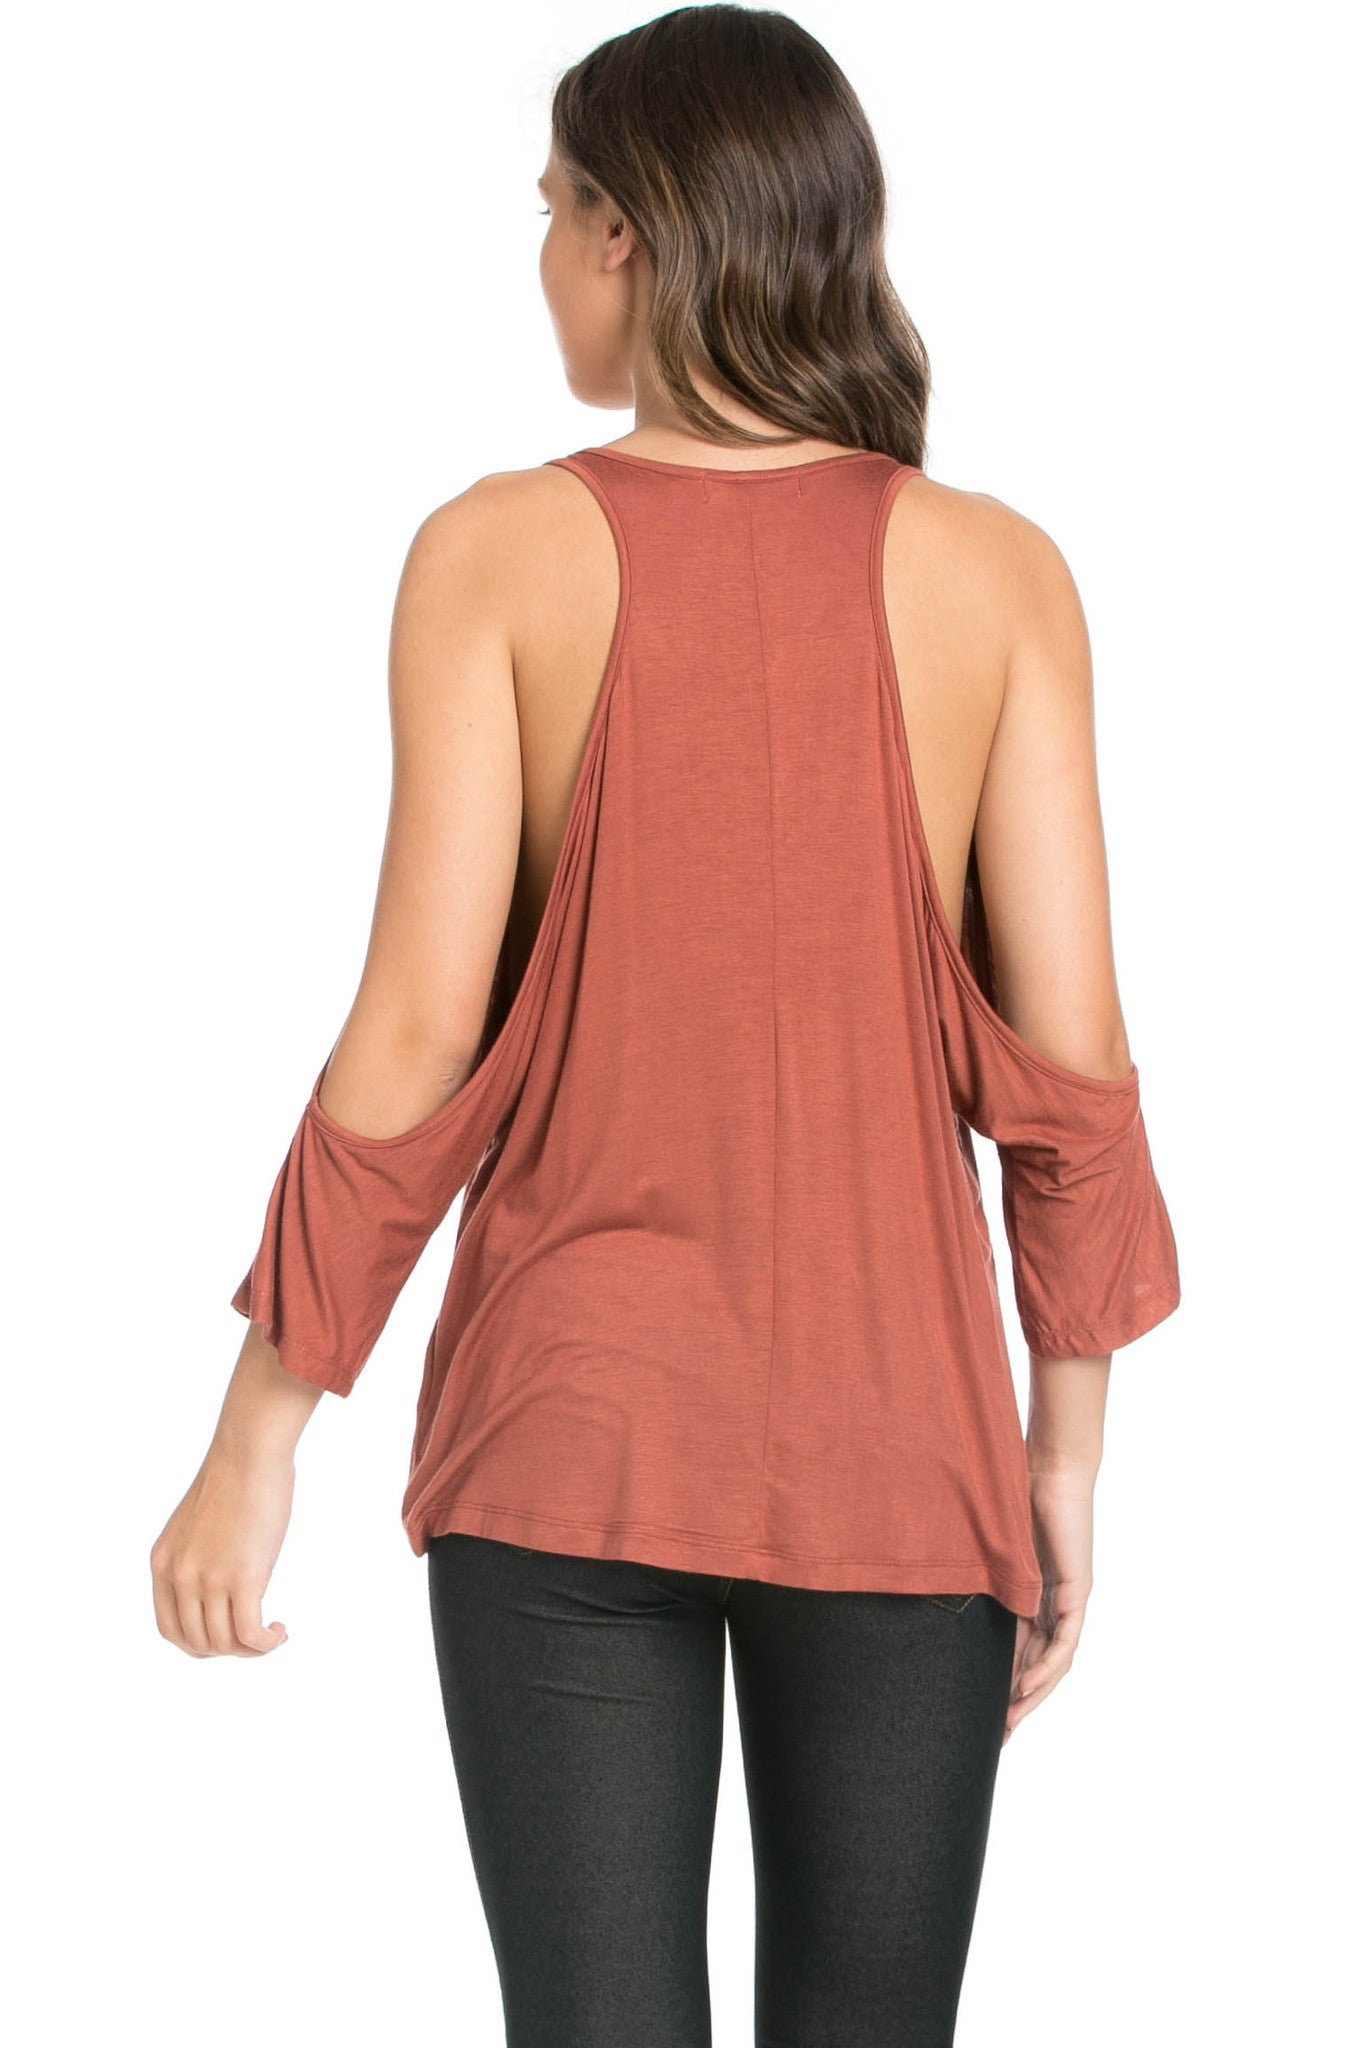 Classic Cold Shoulder Top Rust - Tops - My Yuccie - 3